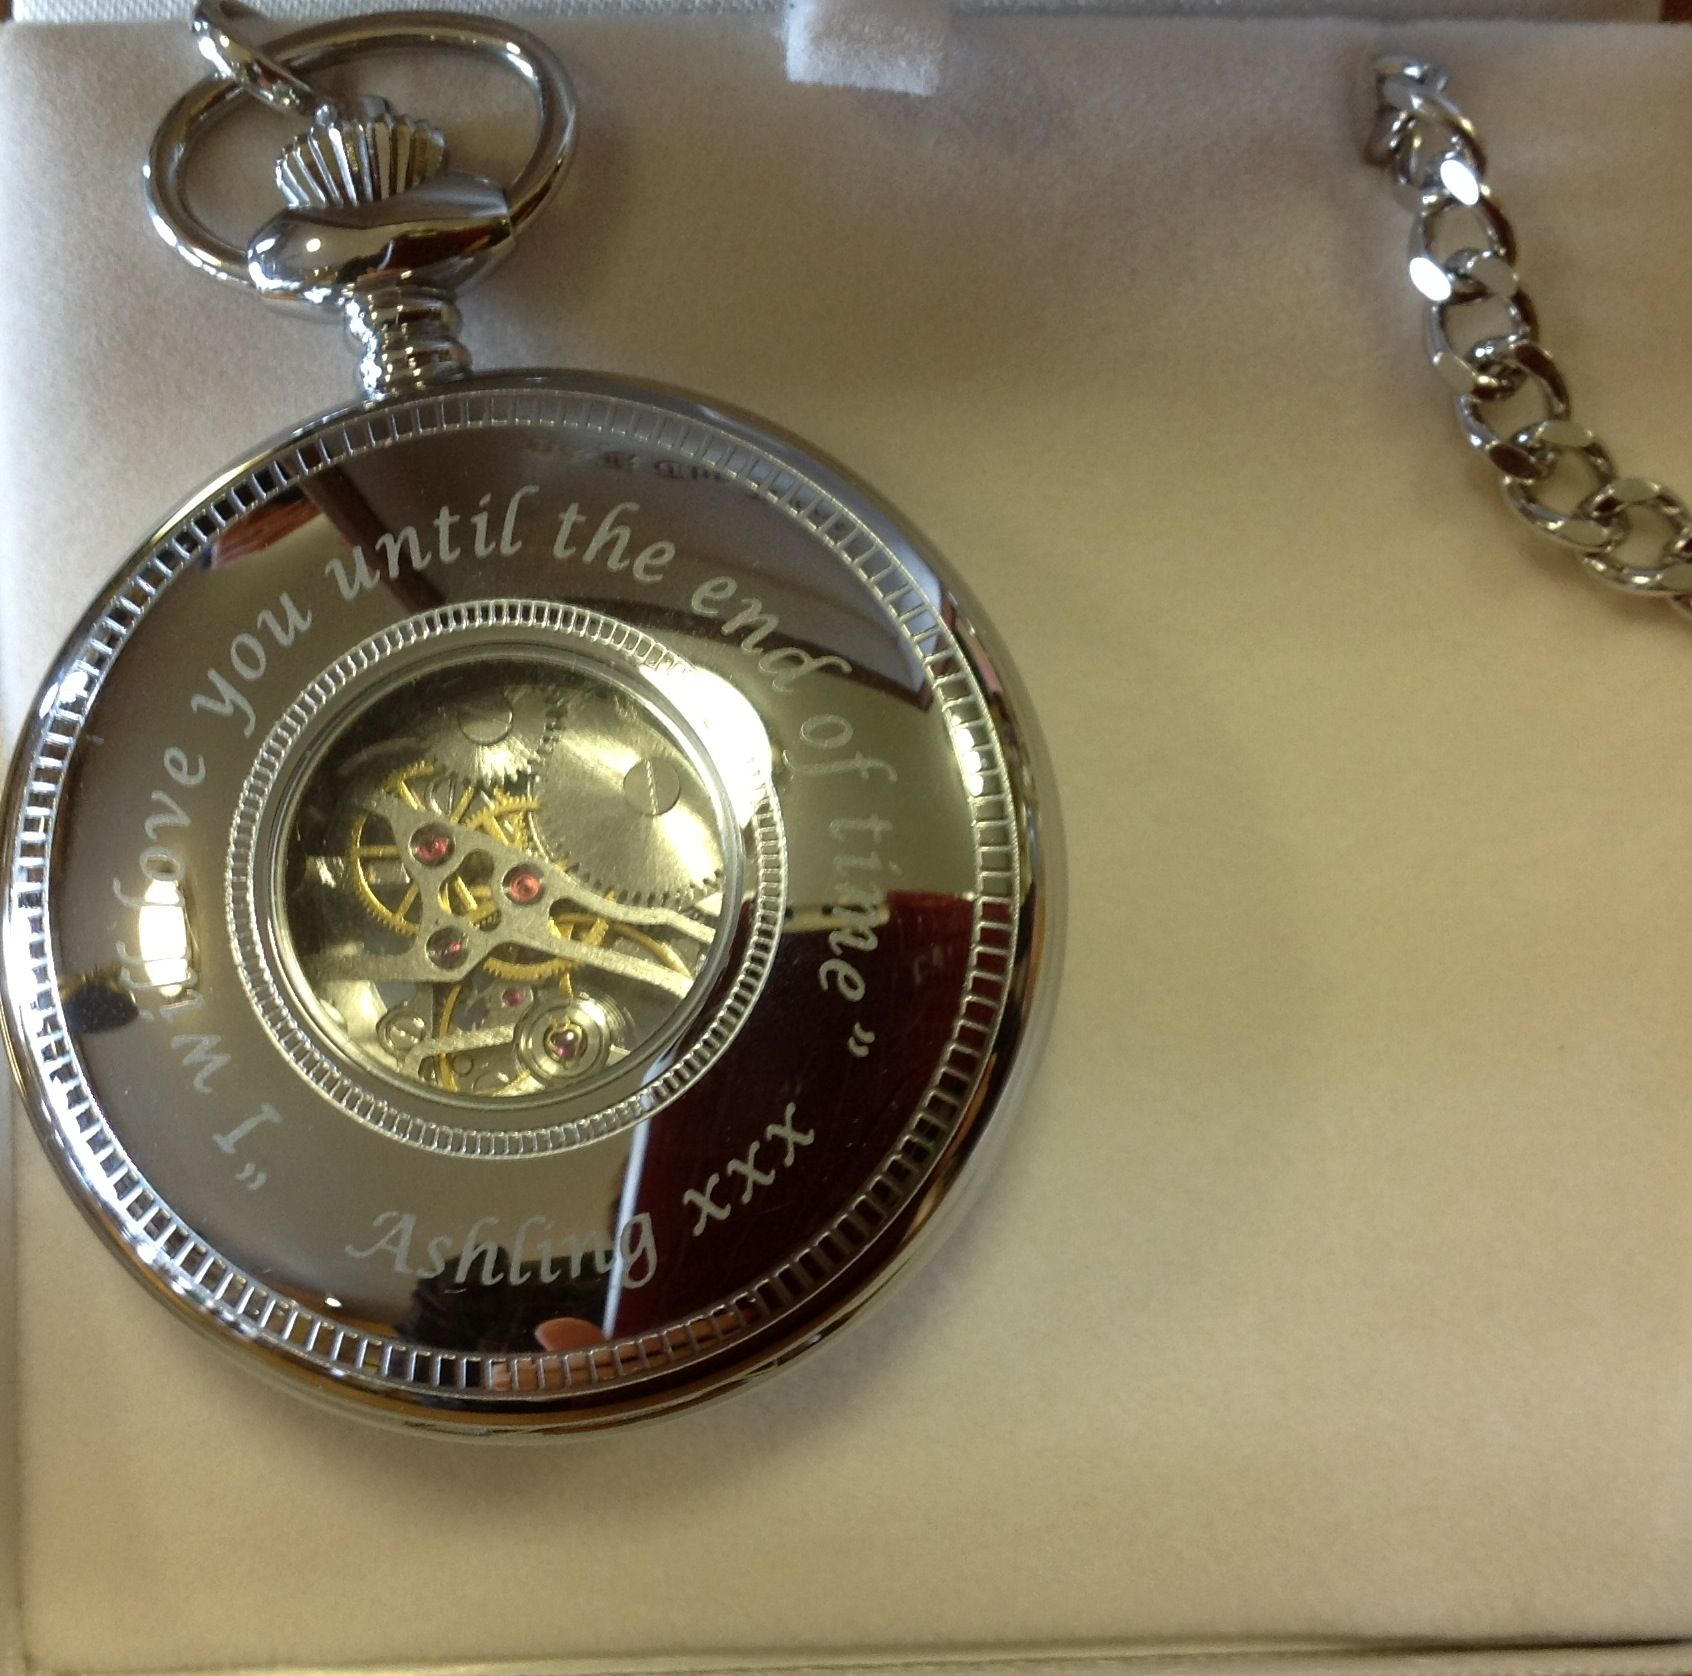 What Is The Appropriate Gift For A Wedding: A TIMELESS Keepsake. Personalised Pocket Watch. Such An